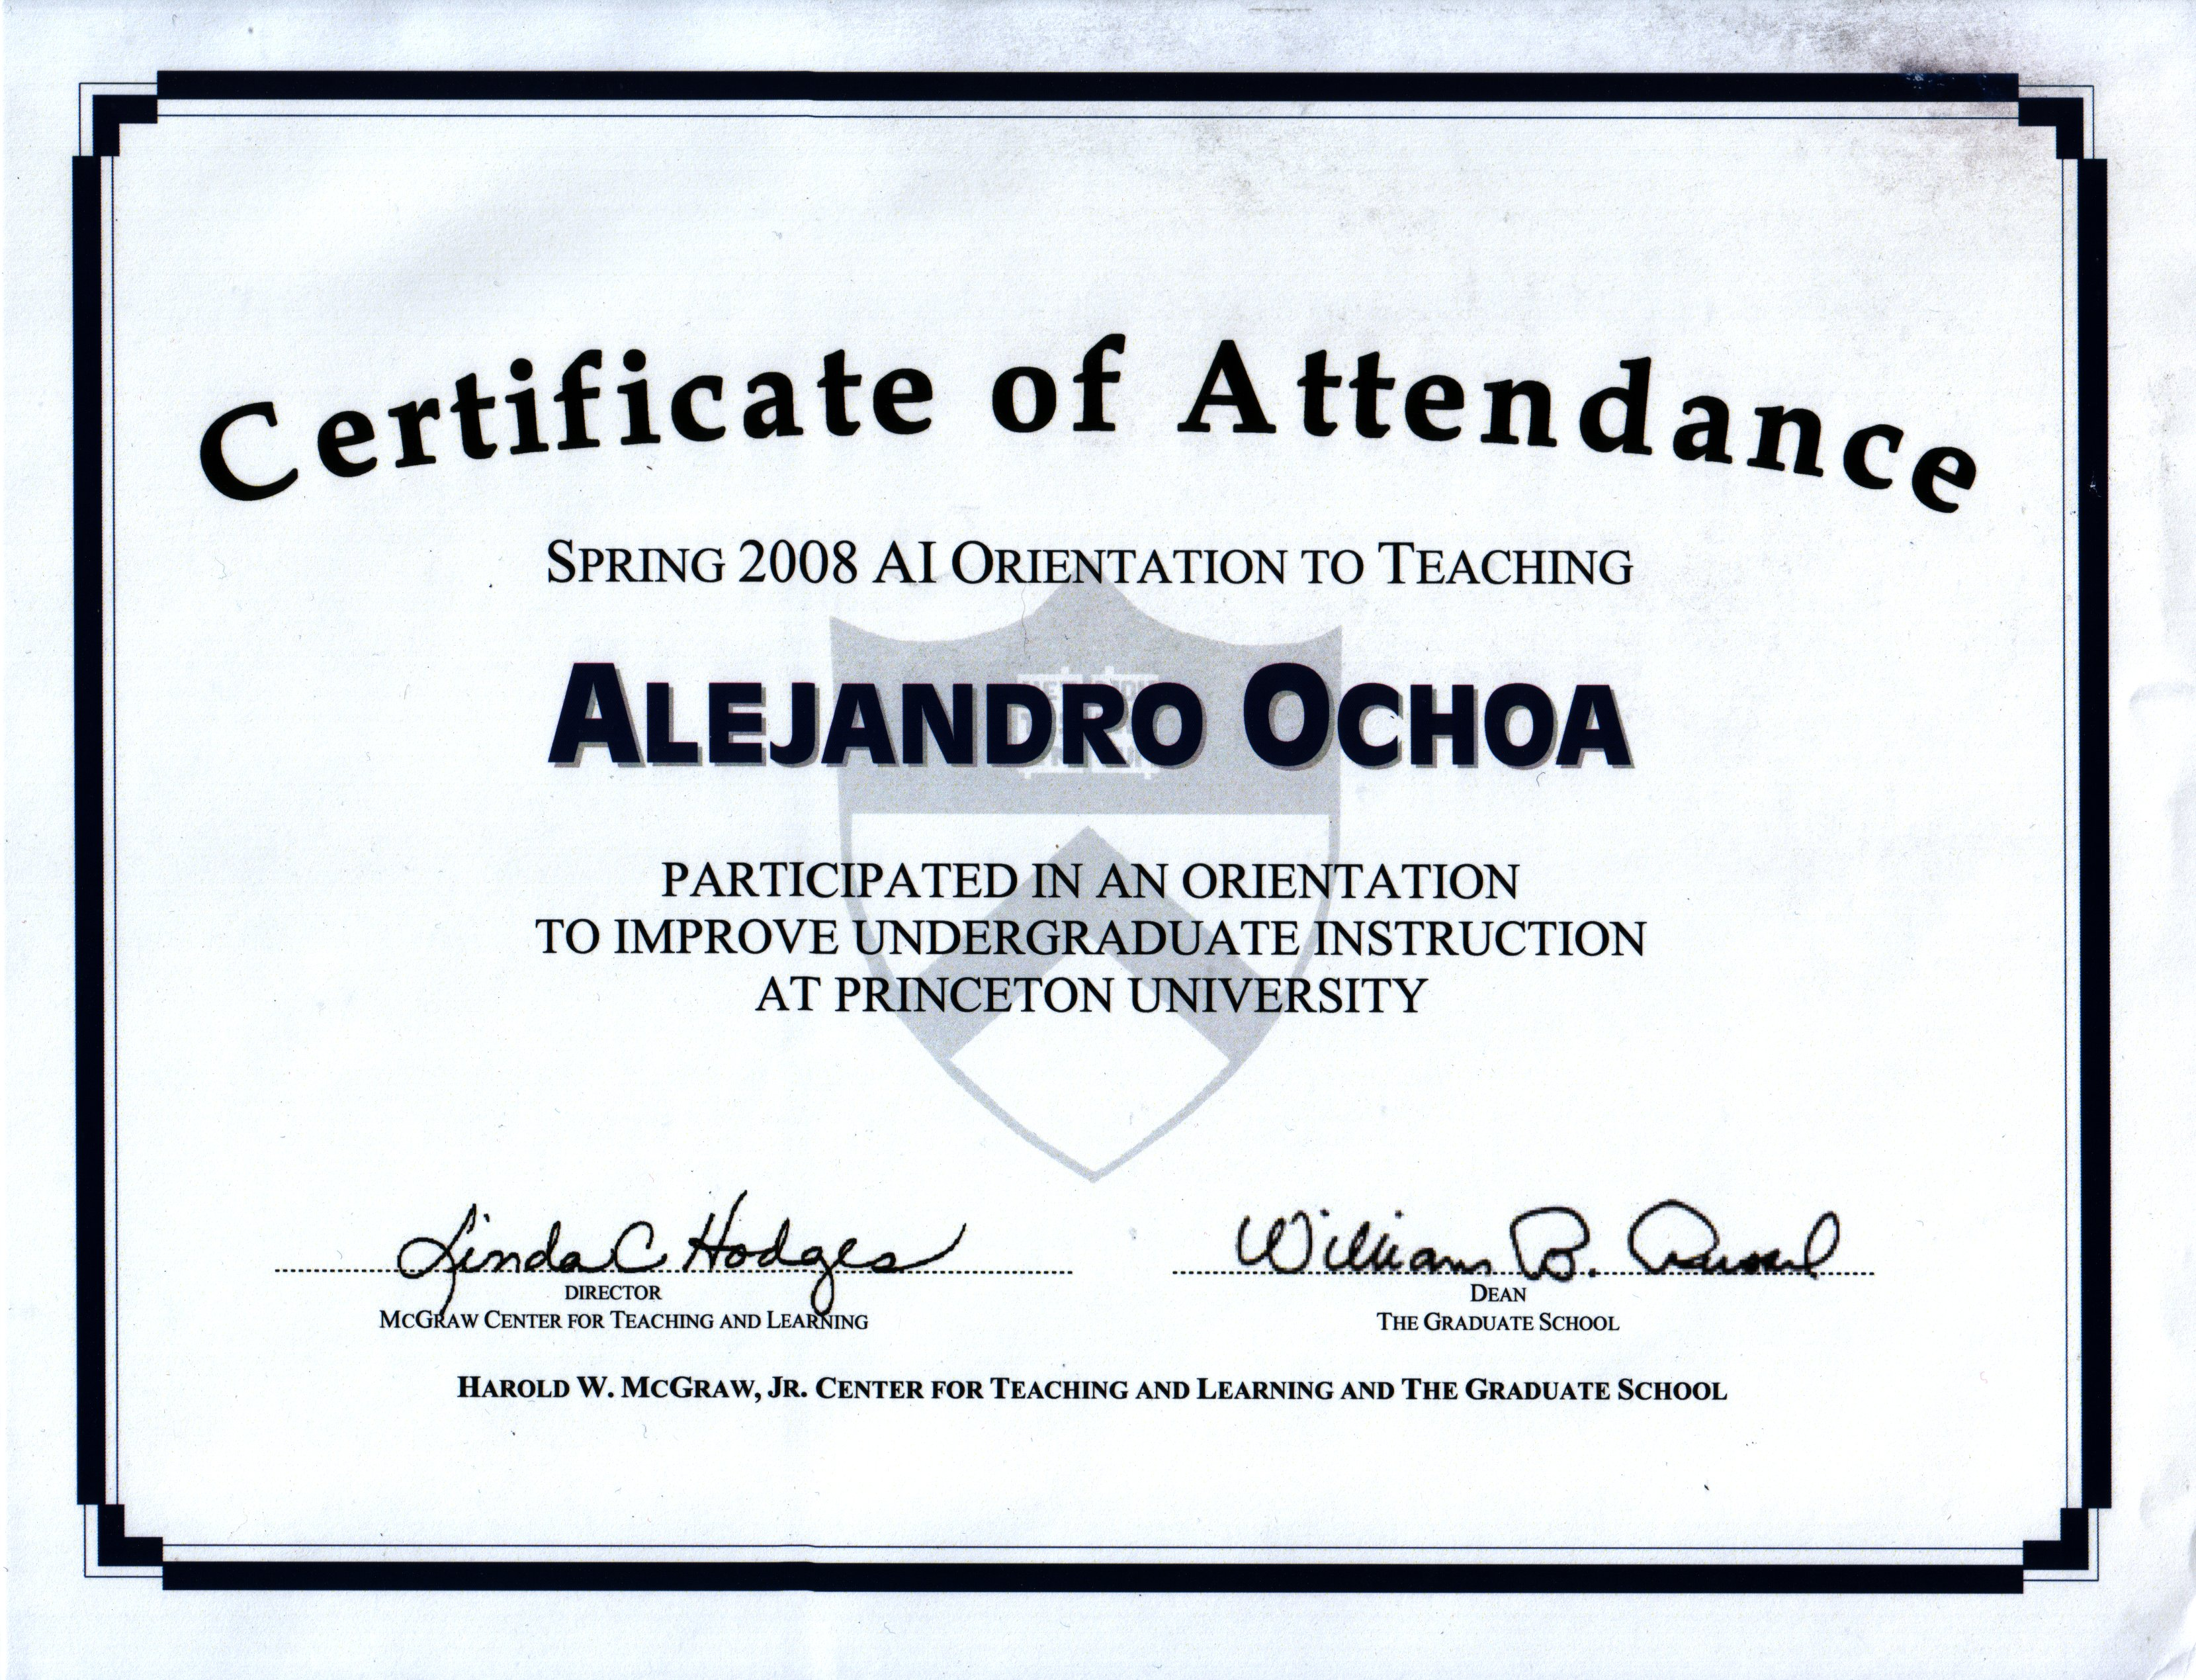 Conference certificate of attendance template gallery templates cvrricvlvm vitae certificate of attendance alramifo gallery 1betcityfo Gallery